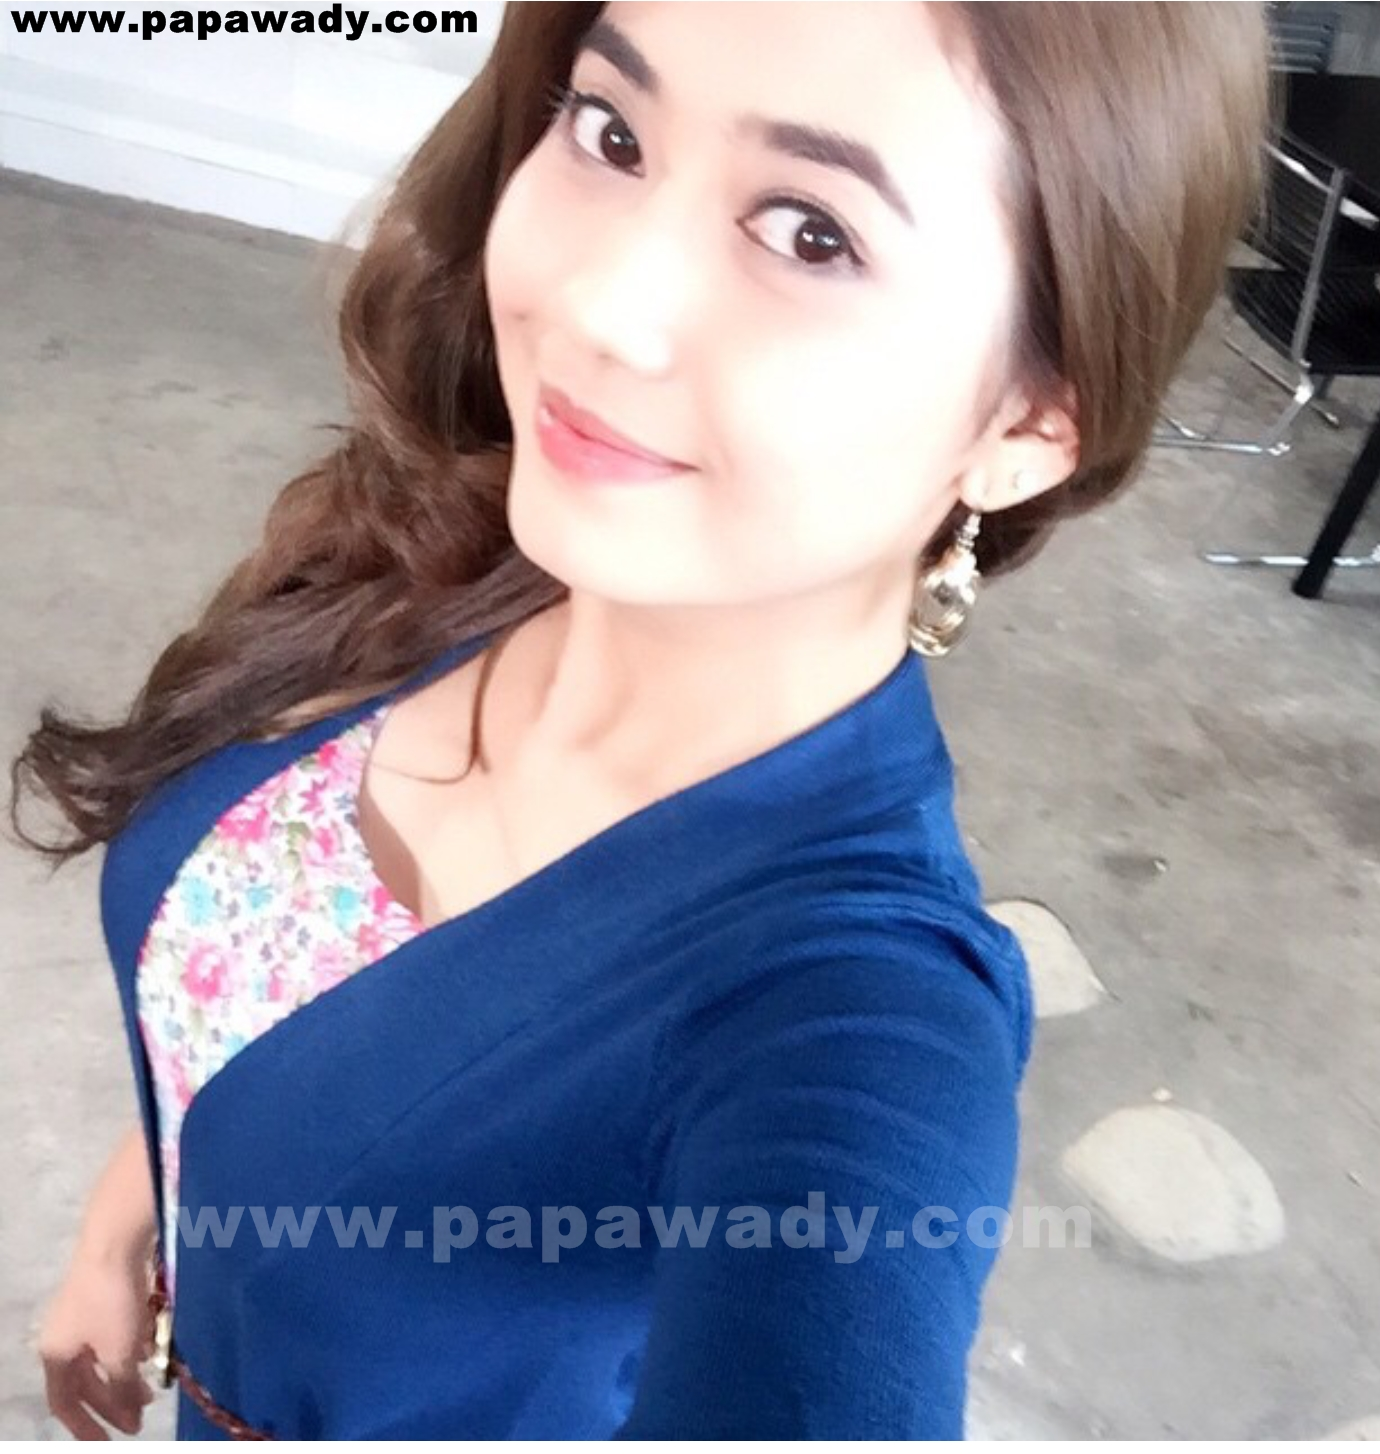 8 Instagram Pictures of Myanmar Model Thinzar Wint Kyaw